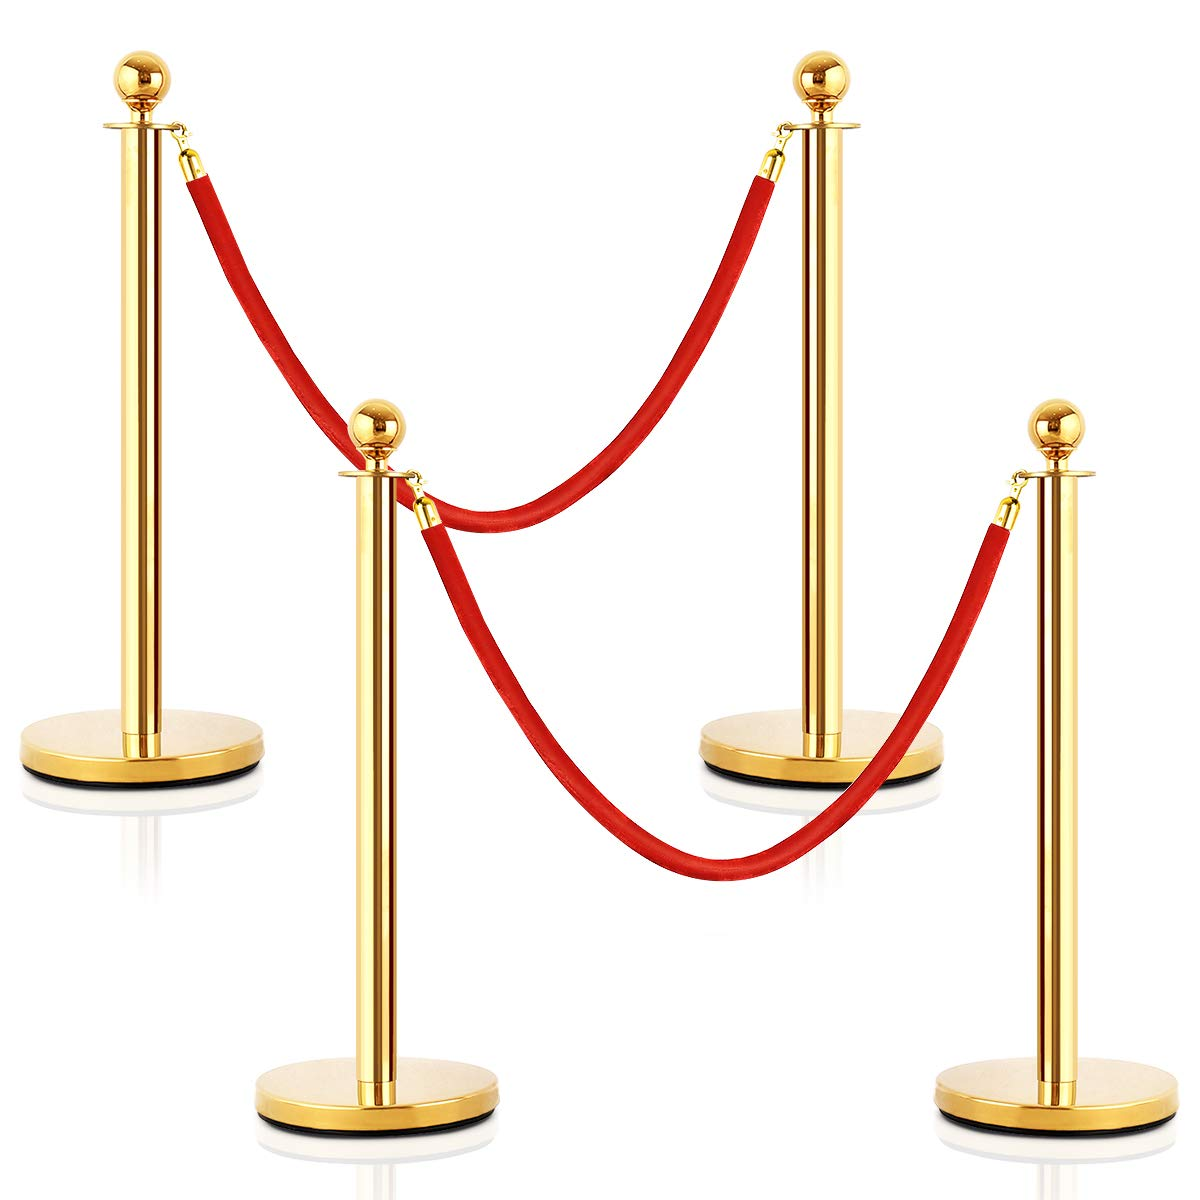 5Ft Barrier Ropes Crowd Control 2 Pieces, Red with Stainless Gold Color Plated Hooks for Ball Top Stanchions Stanchion Queue Velvet Rope